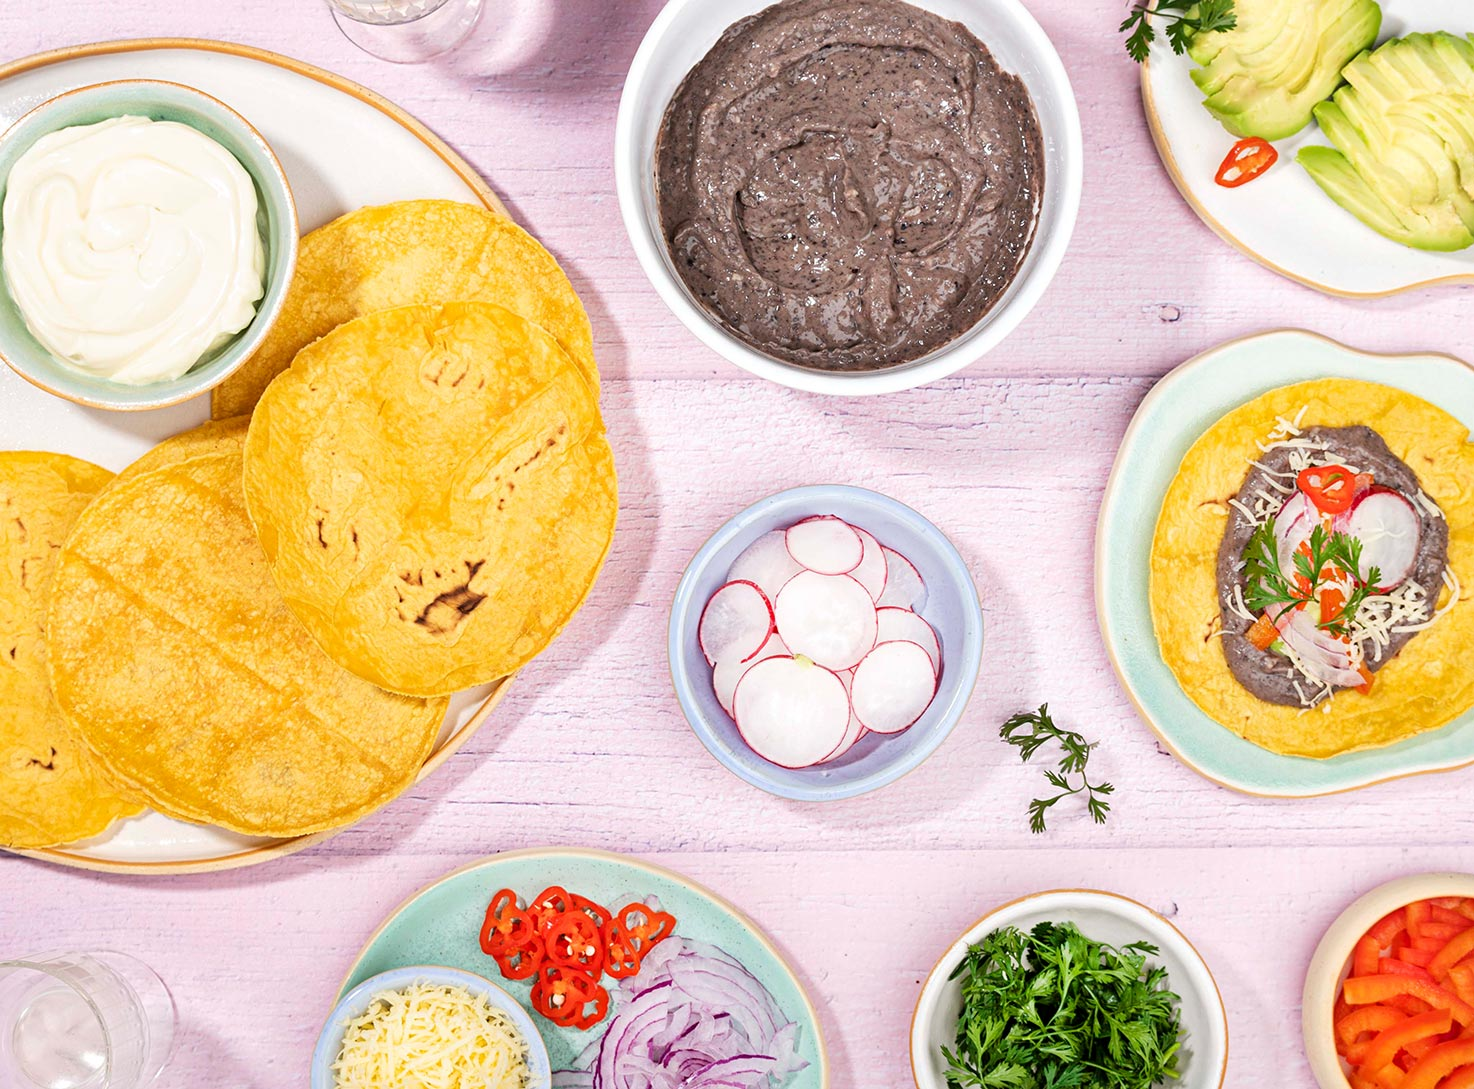 The tortilla is topped with refried beans radish slice, chopped onion, cilantro and grated cheddar cheese that is on the table with all the prepared ingredients | Hurry The Food Up